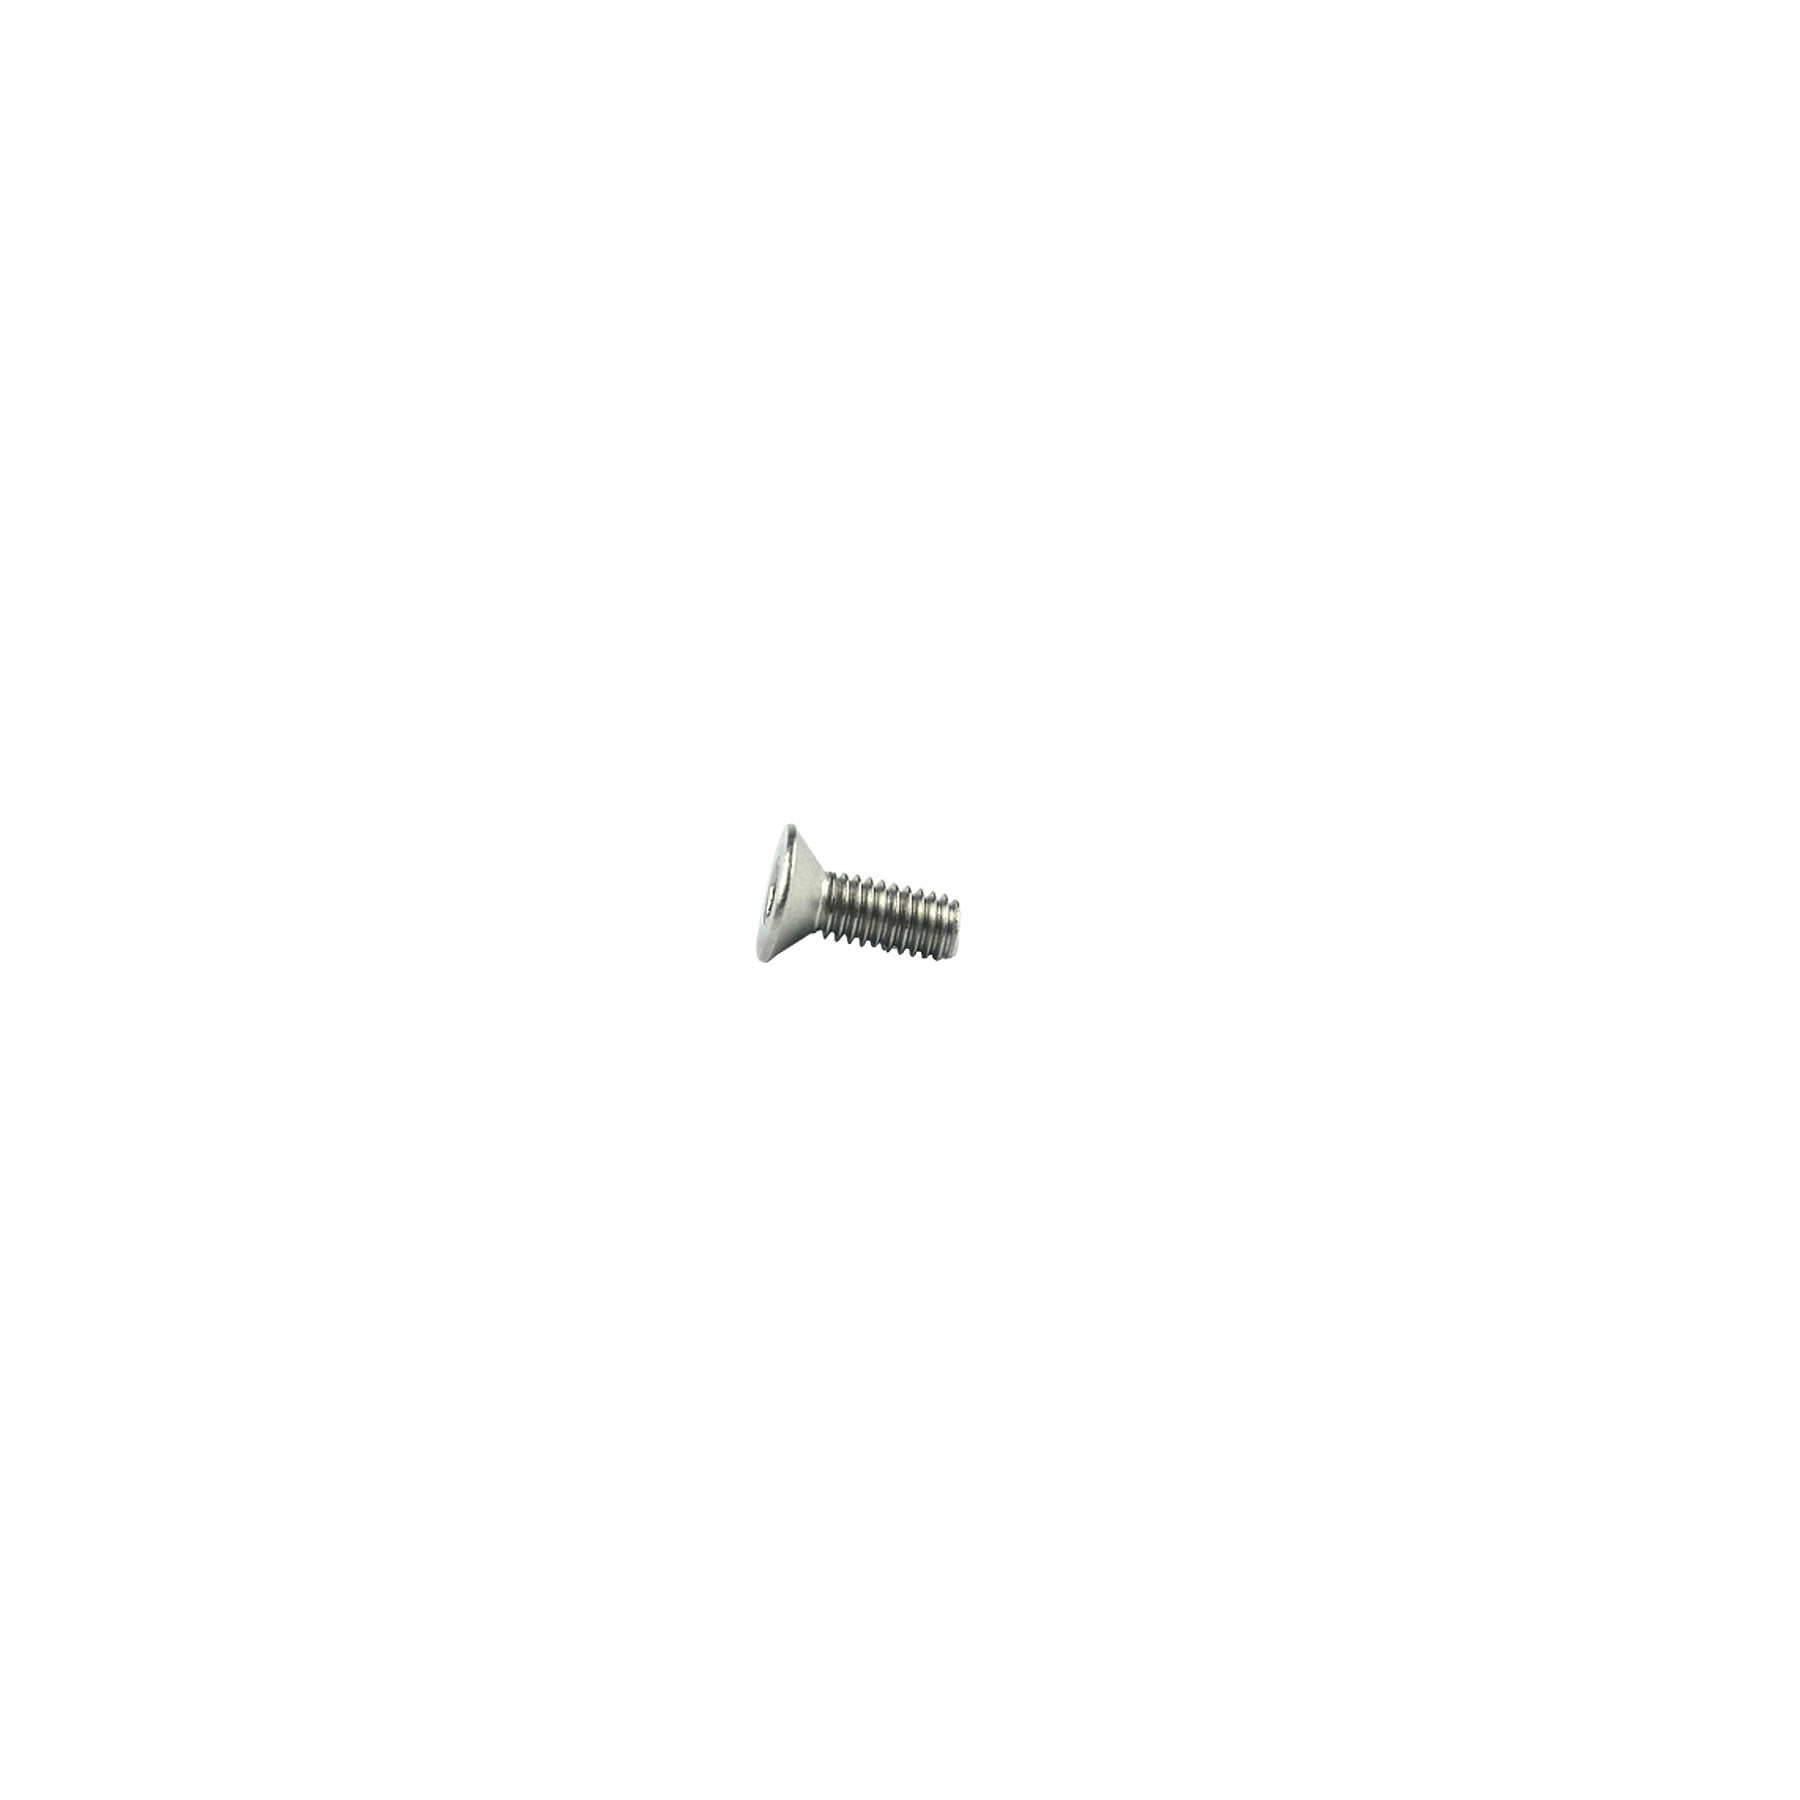 Ergo IV Nose Piece Screw